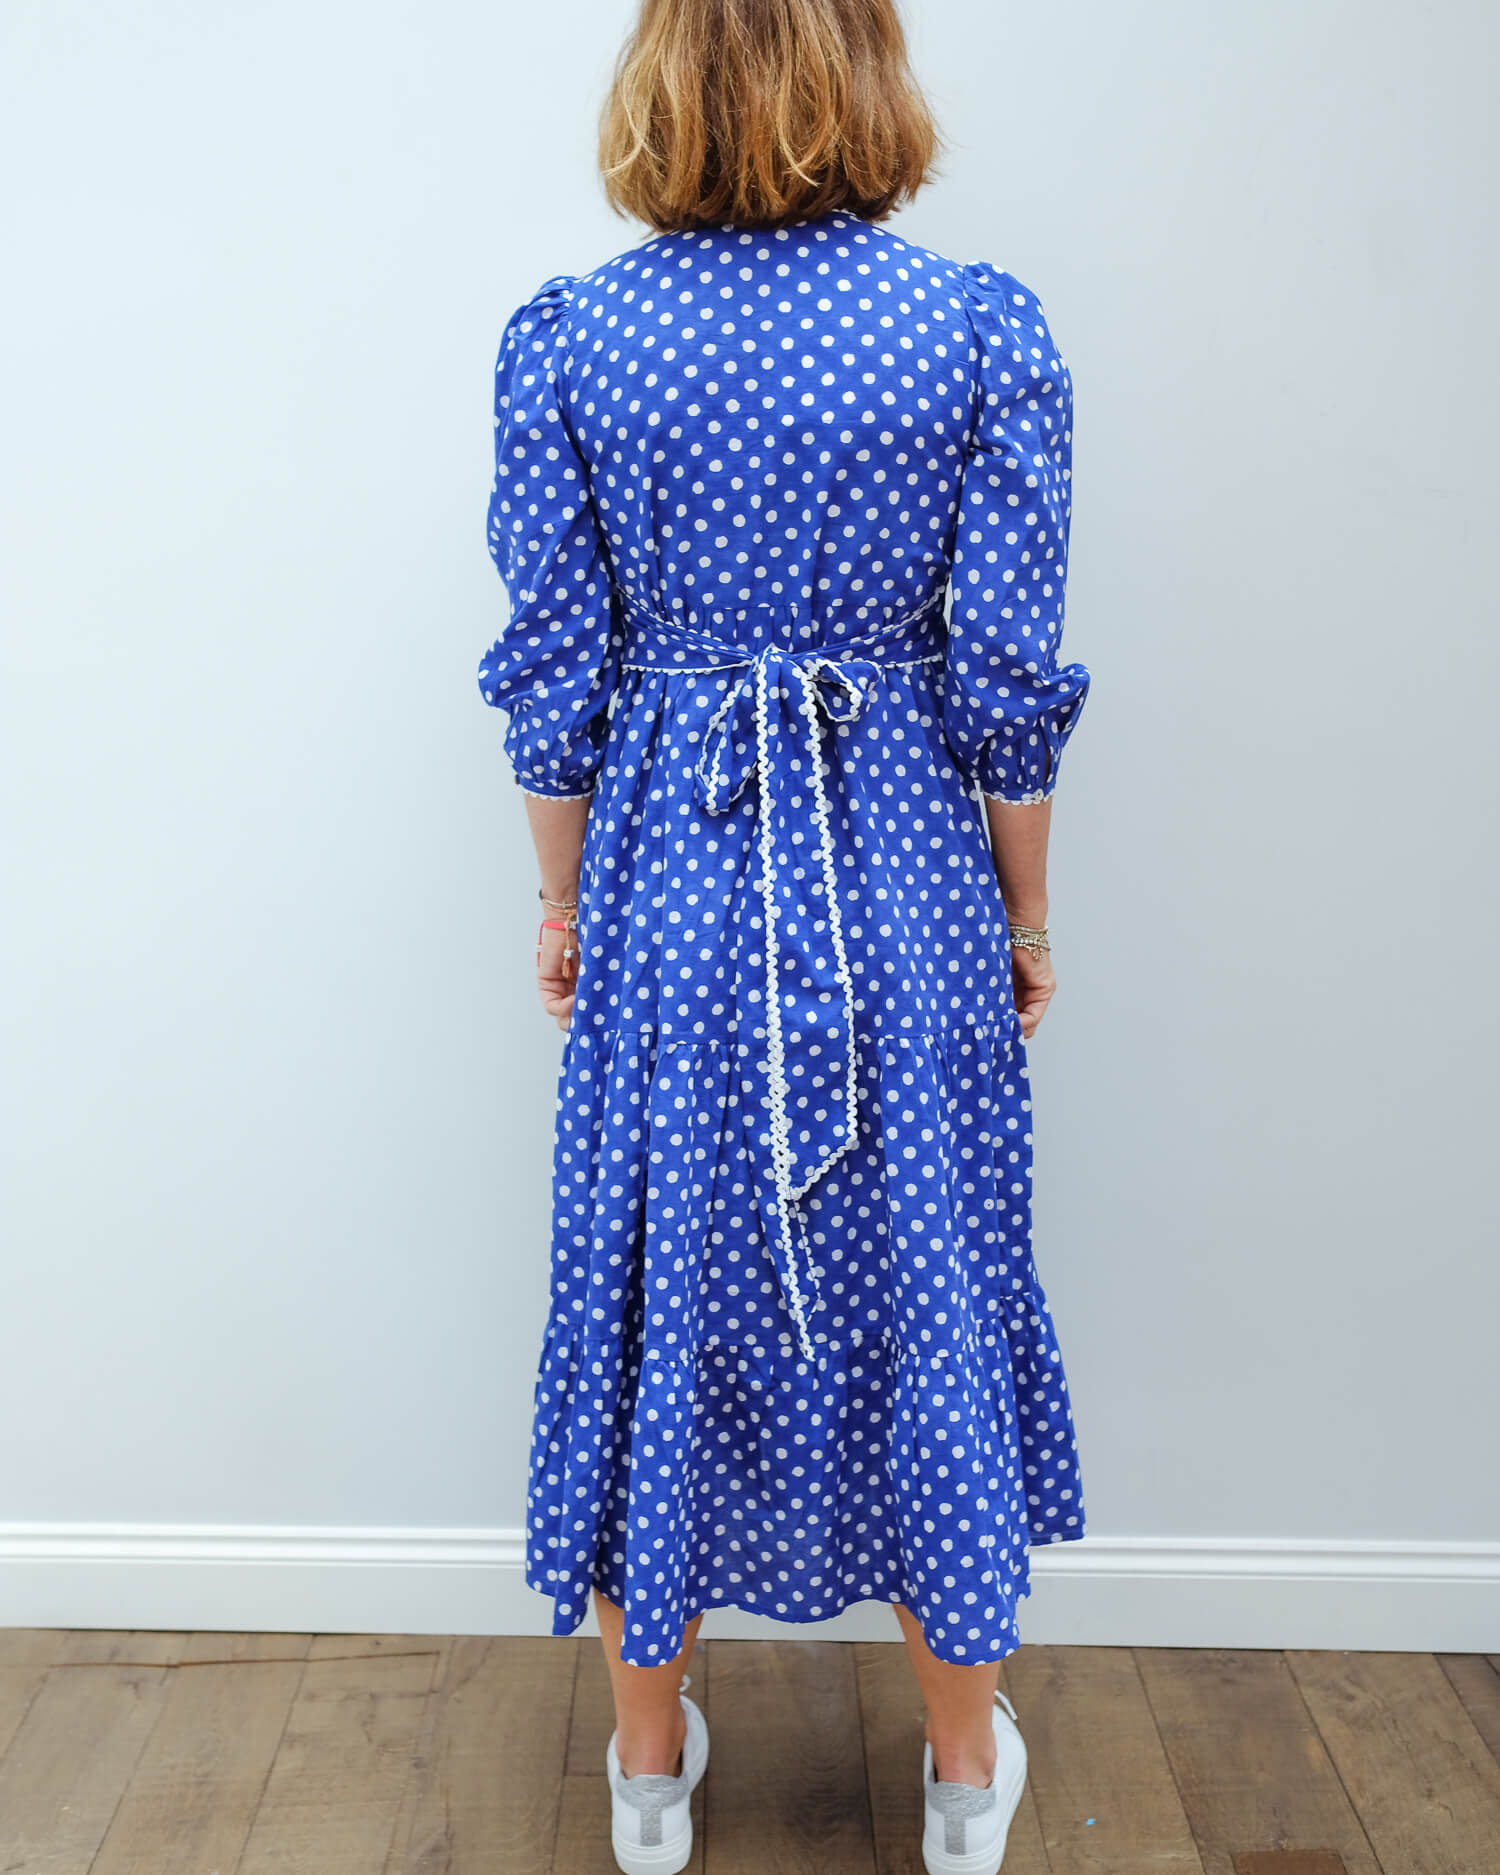 PCP Chloe dress in indigo polka